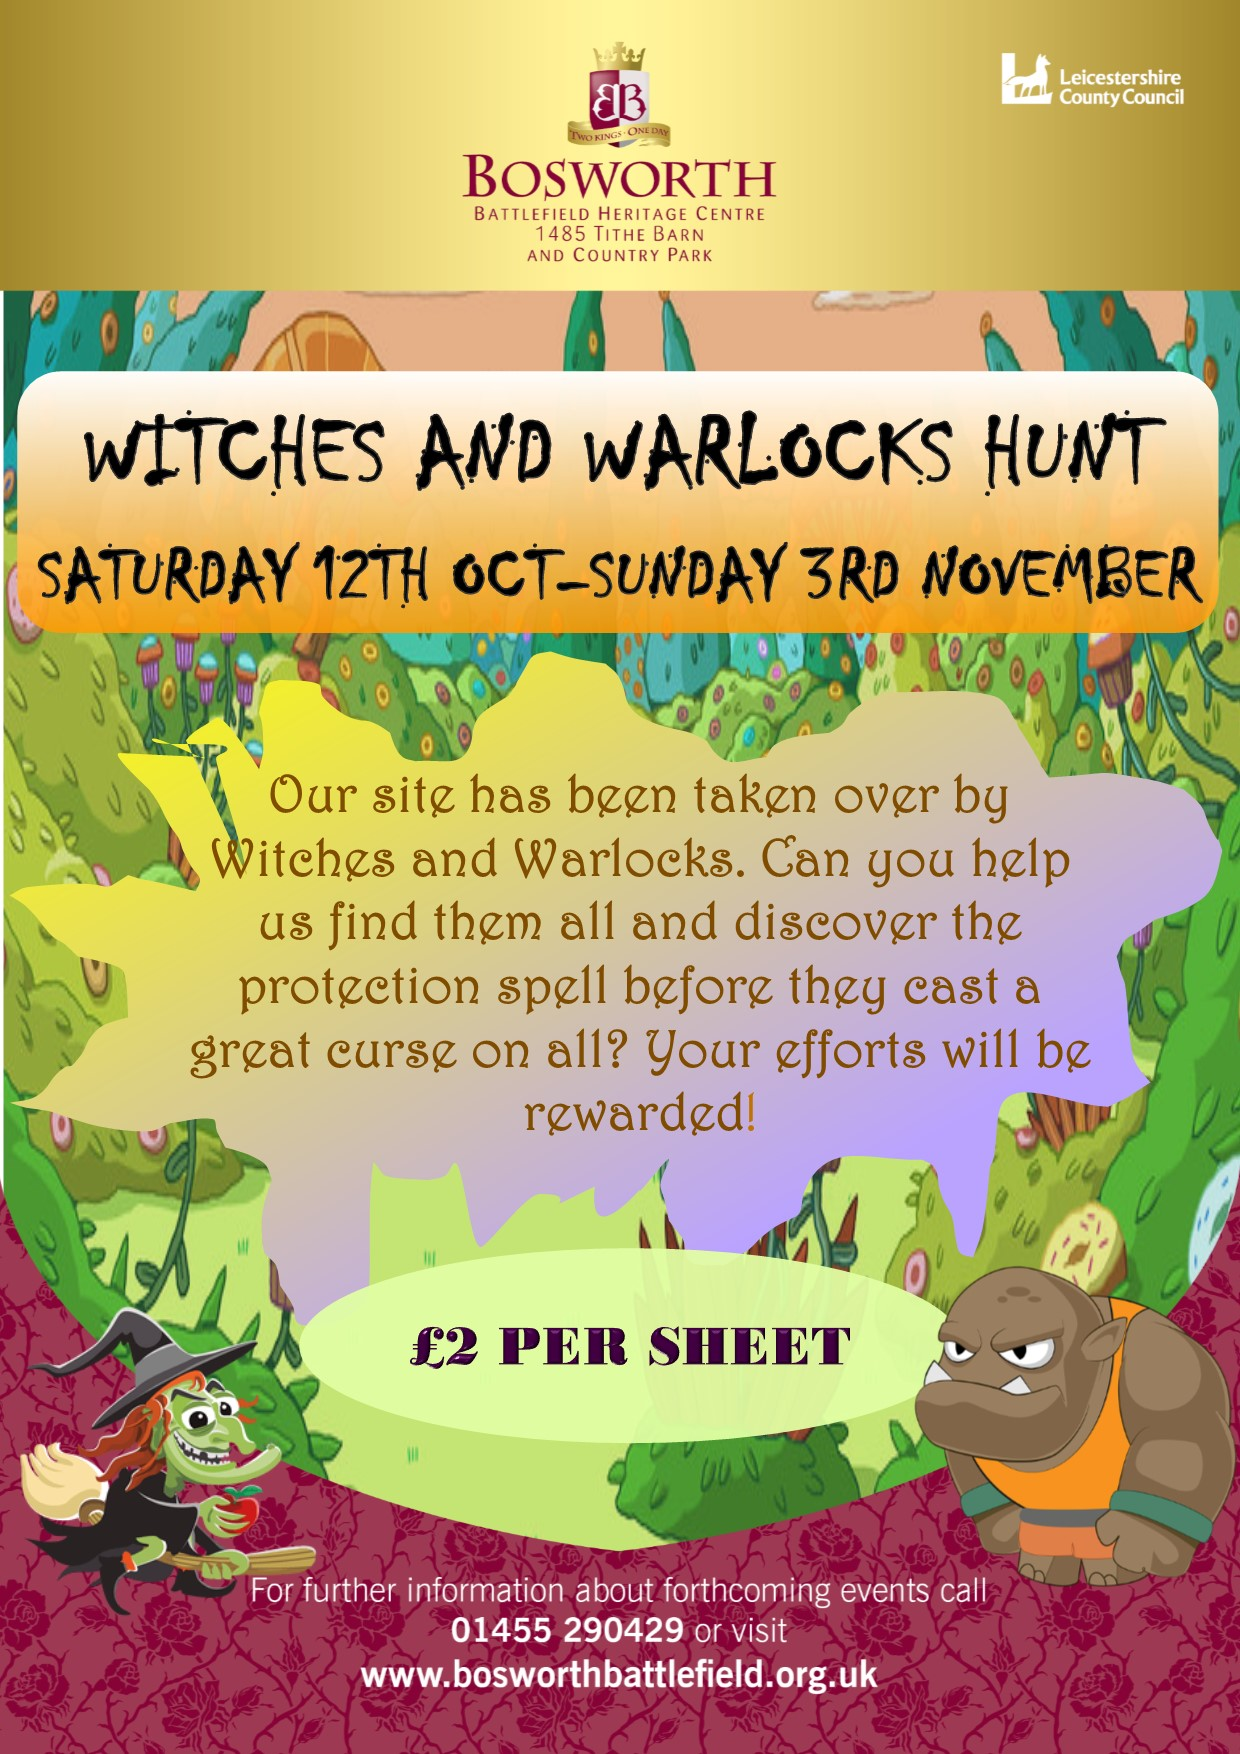 Witches and Warlocks Hunt